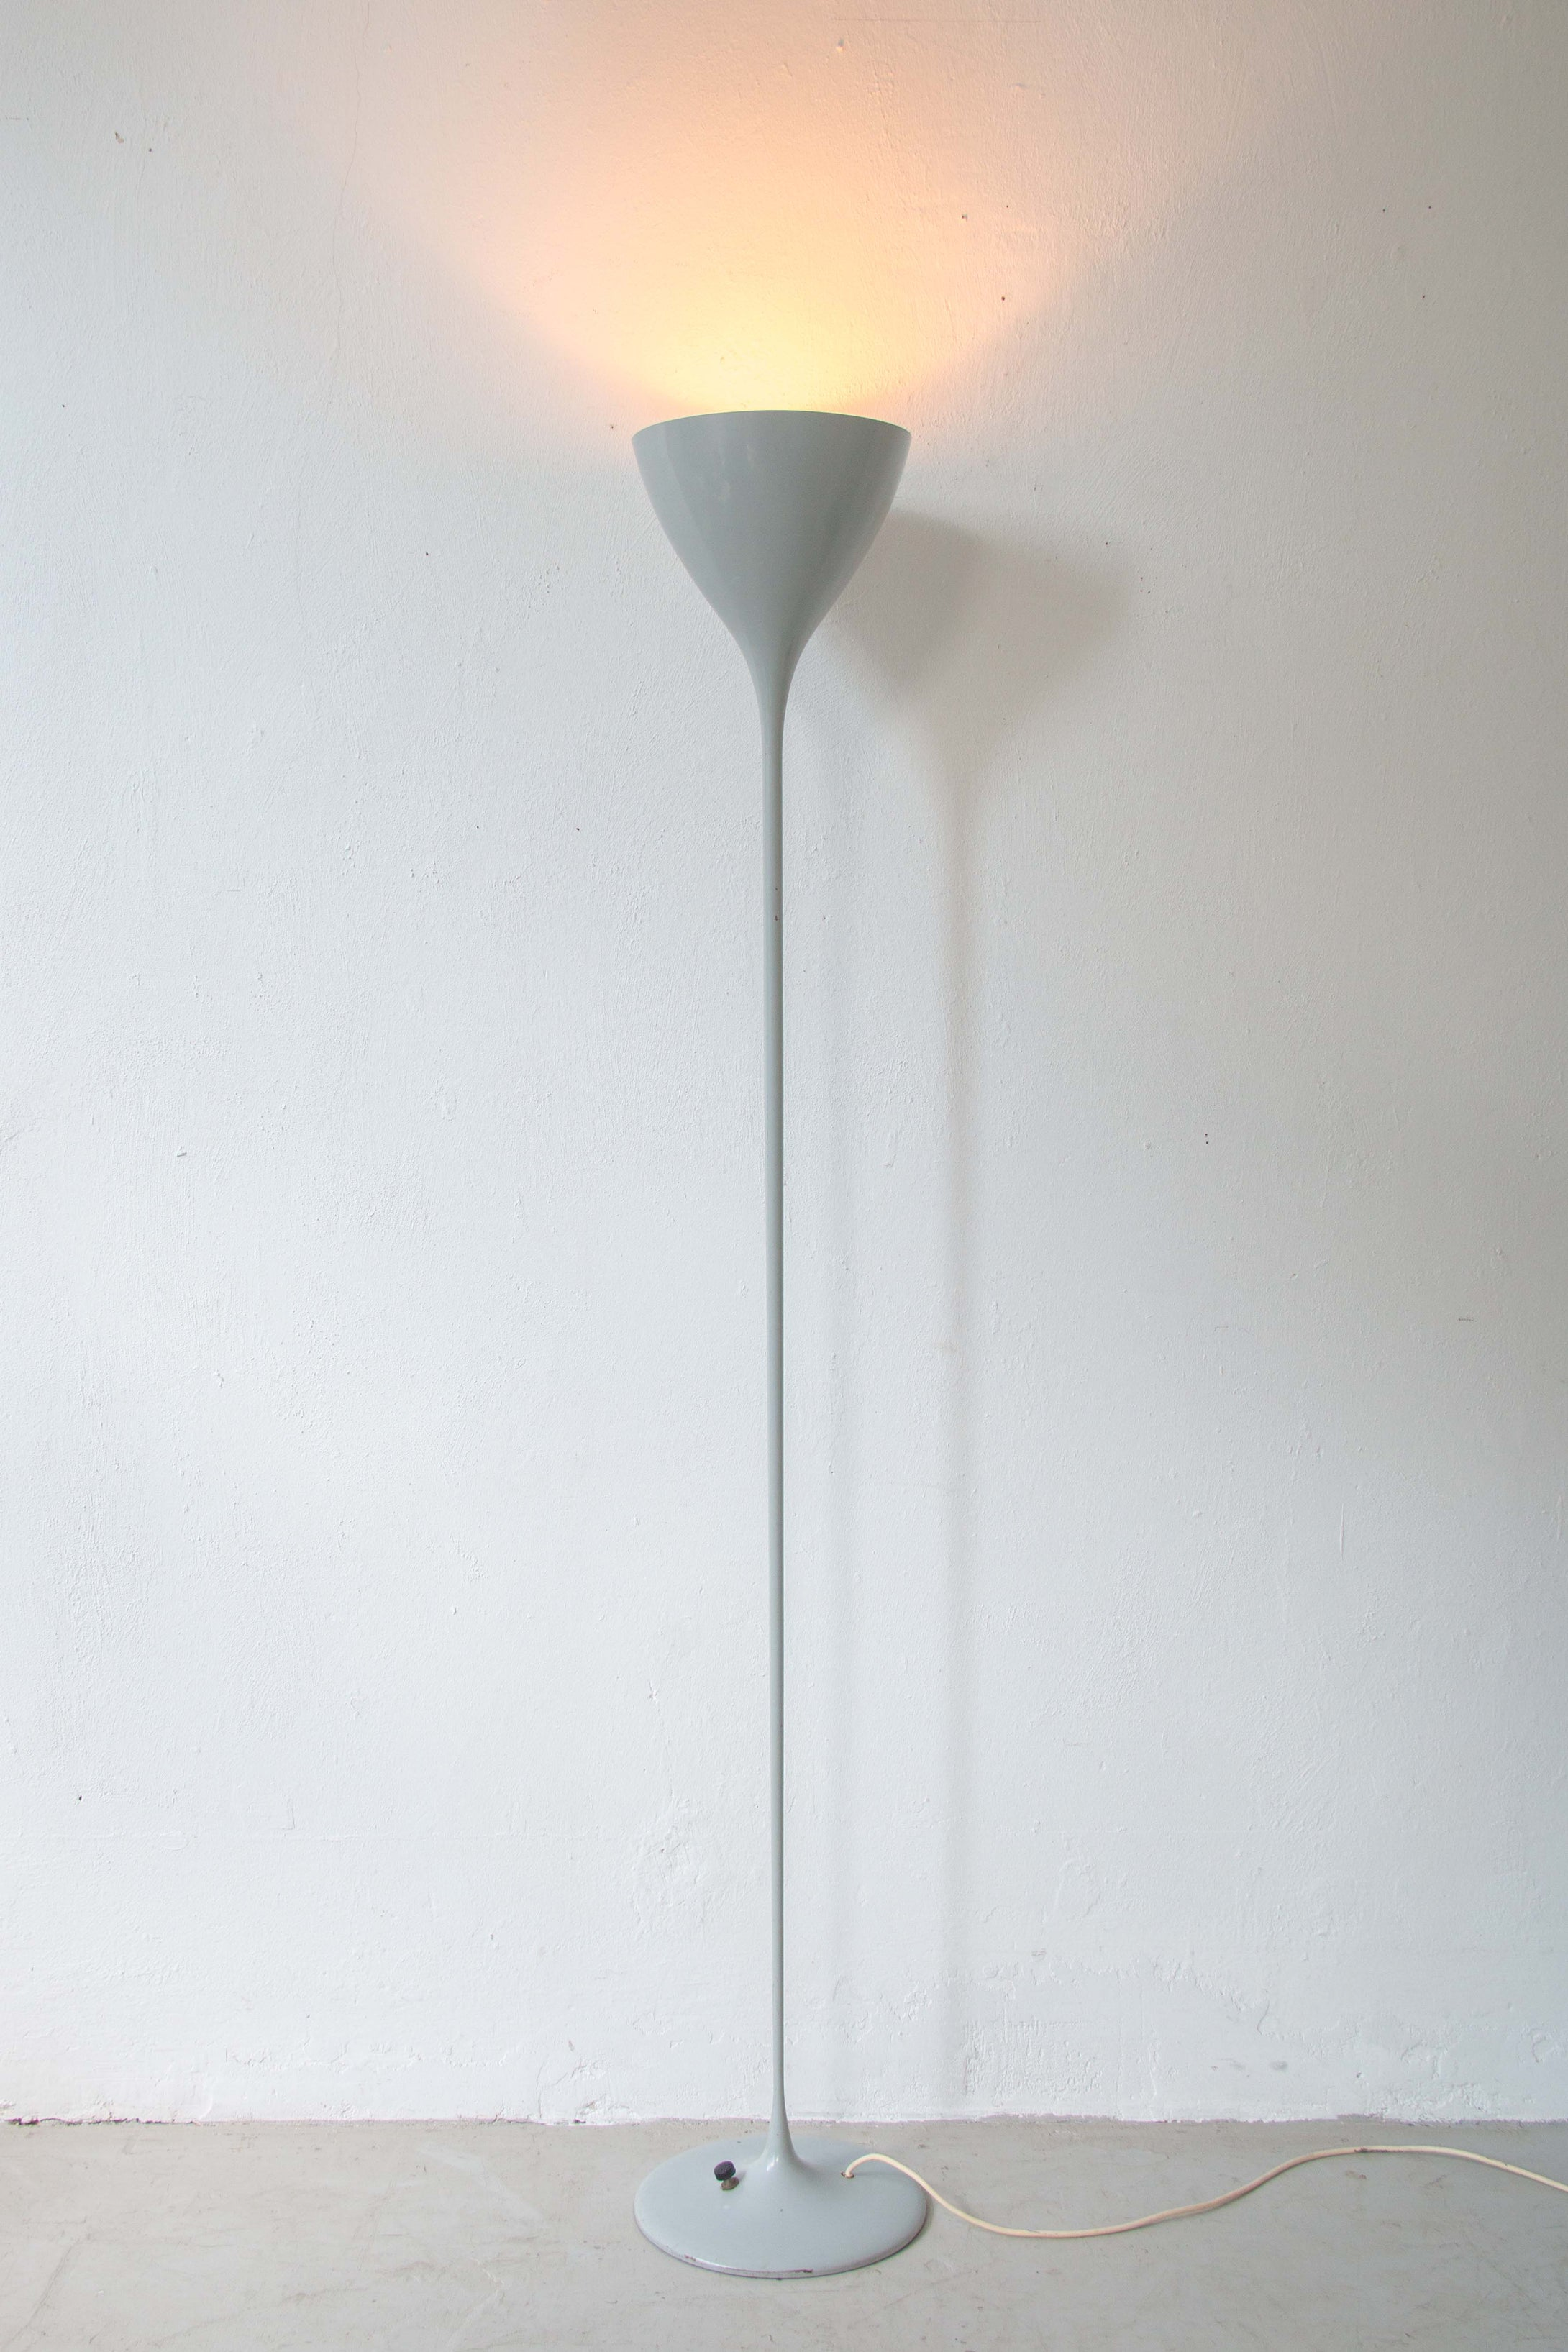 Floor lamp by Max Bill for B.A.G. Turgi